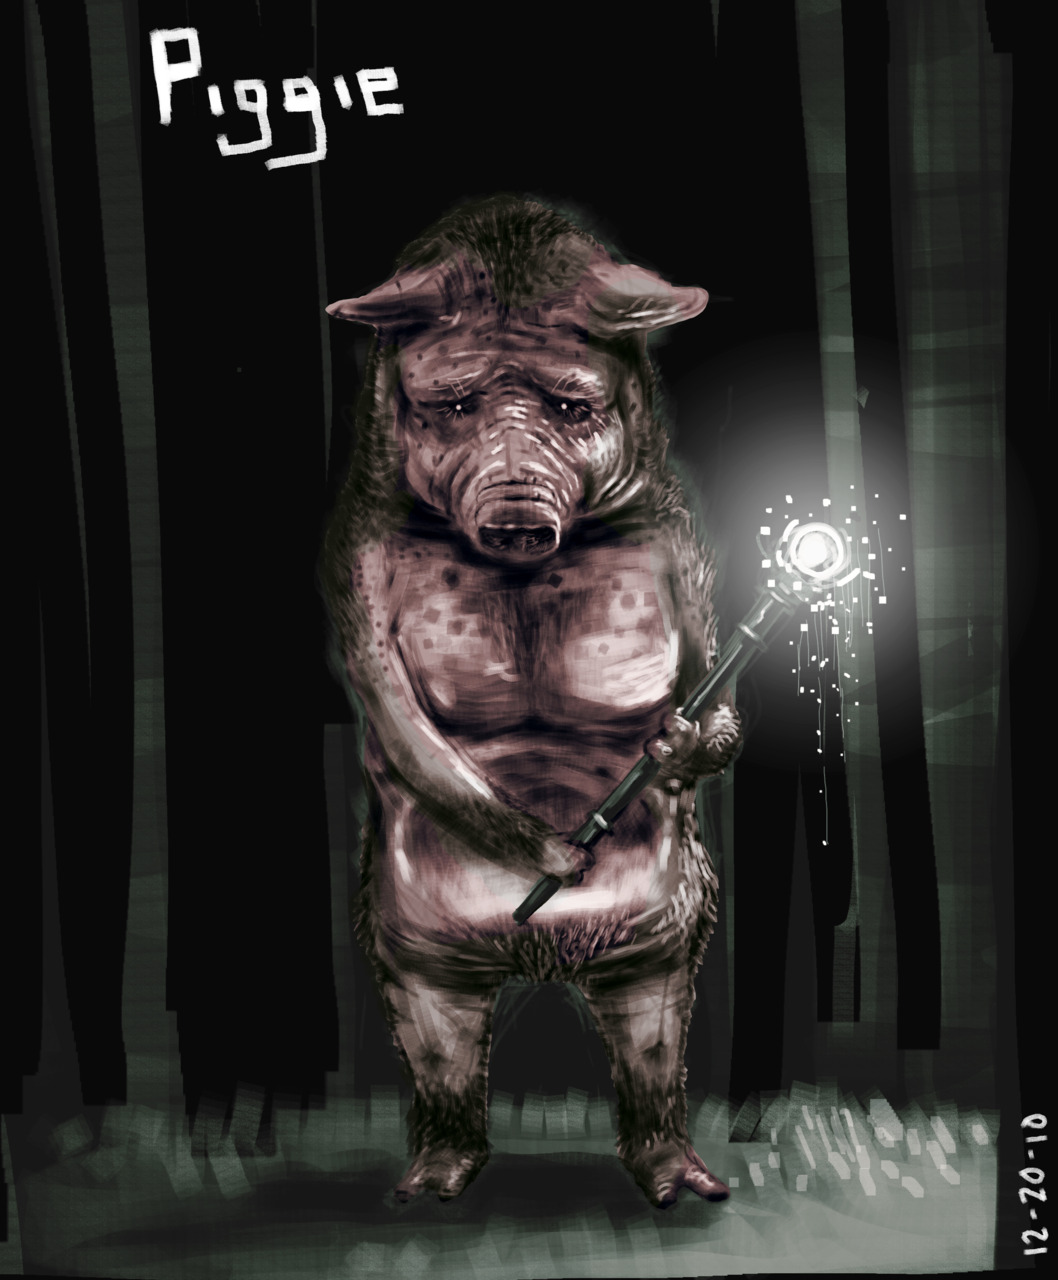 Piggie from Speaker for the Dead